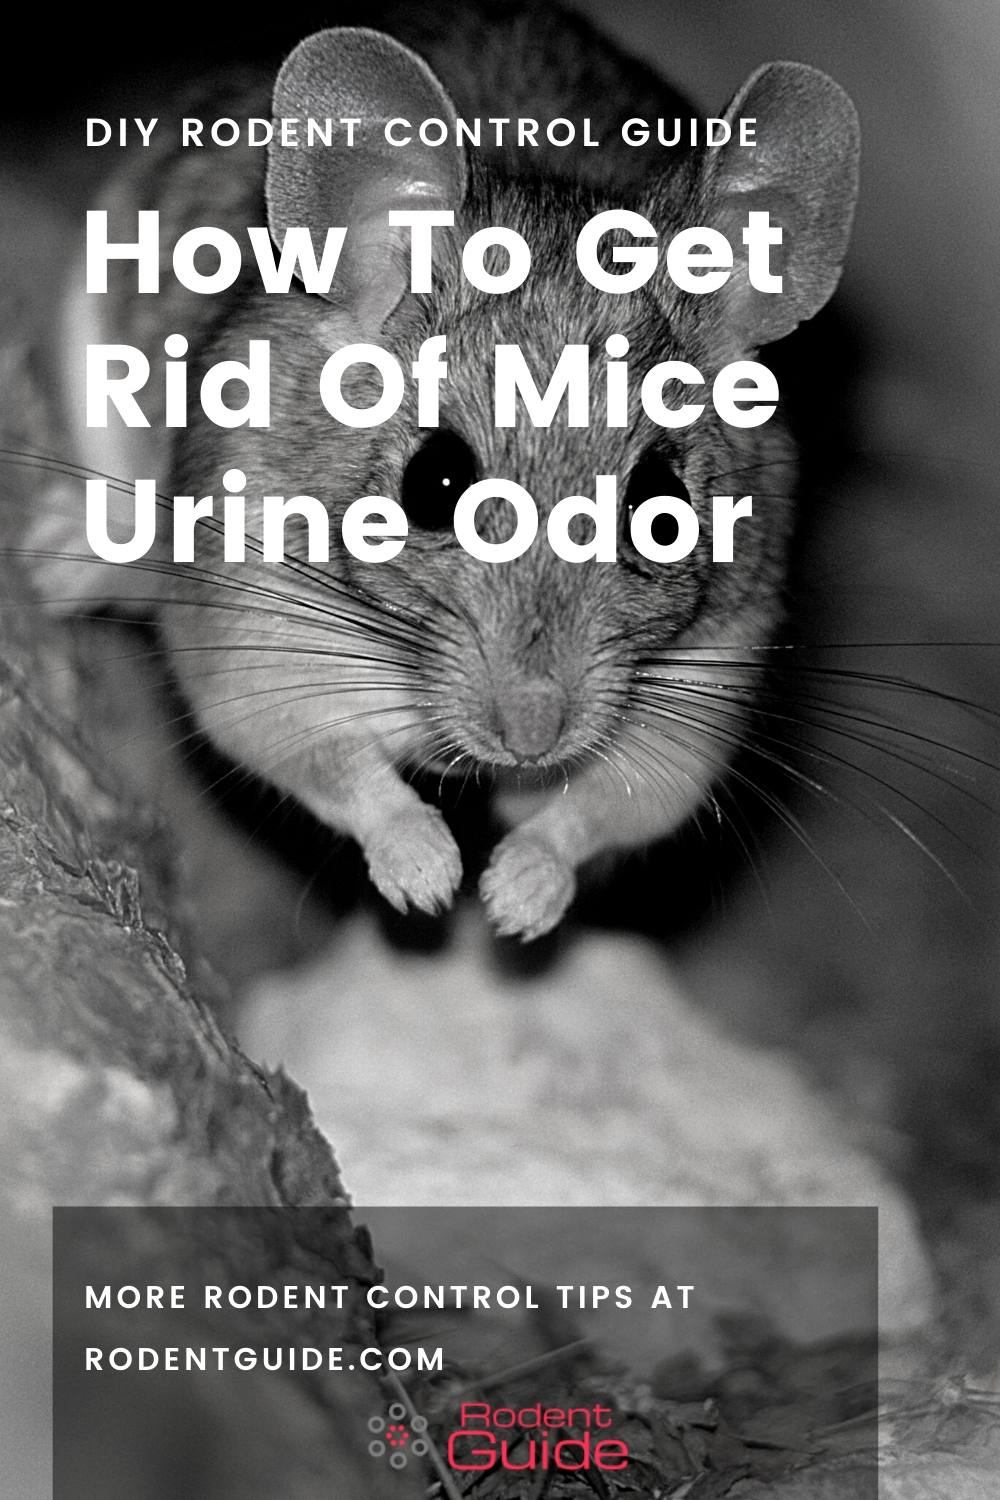 How To Get Rid Of Mice Urine Odor